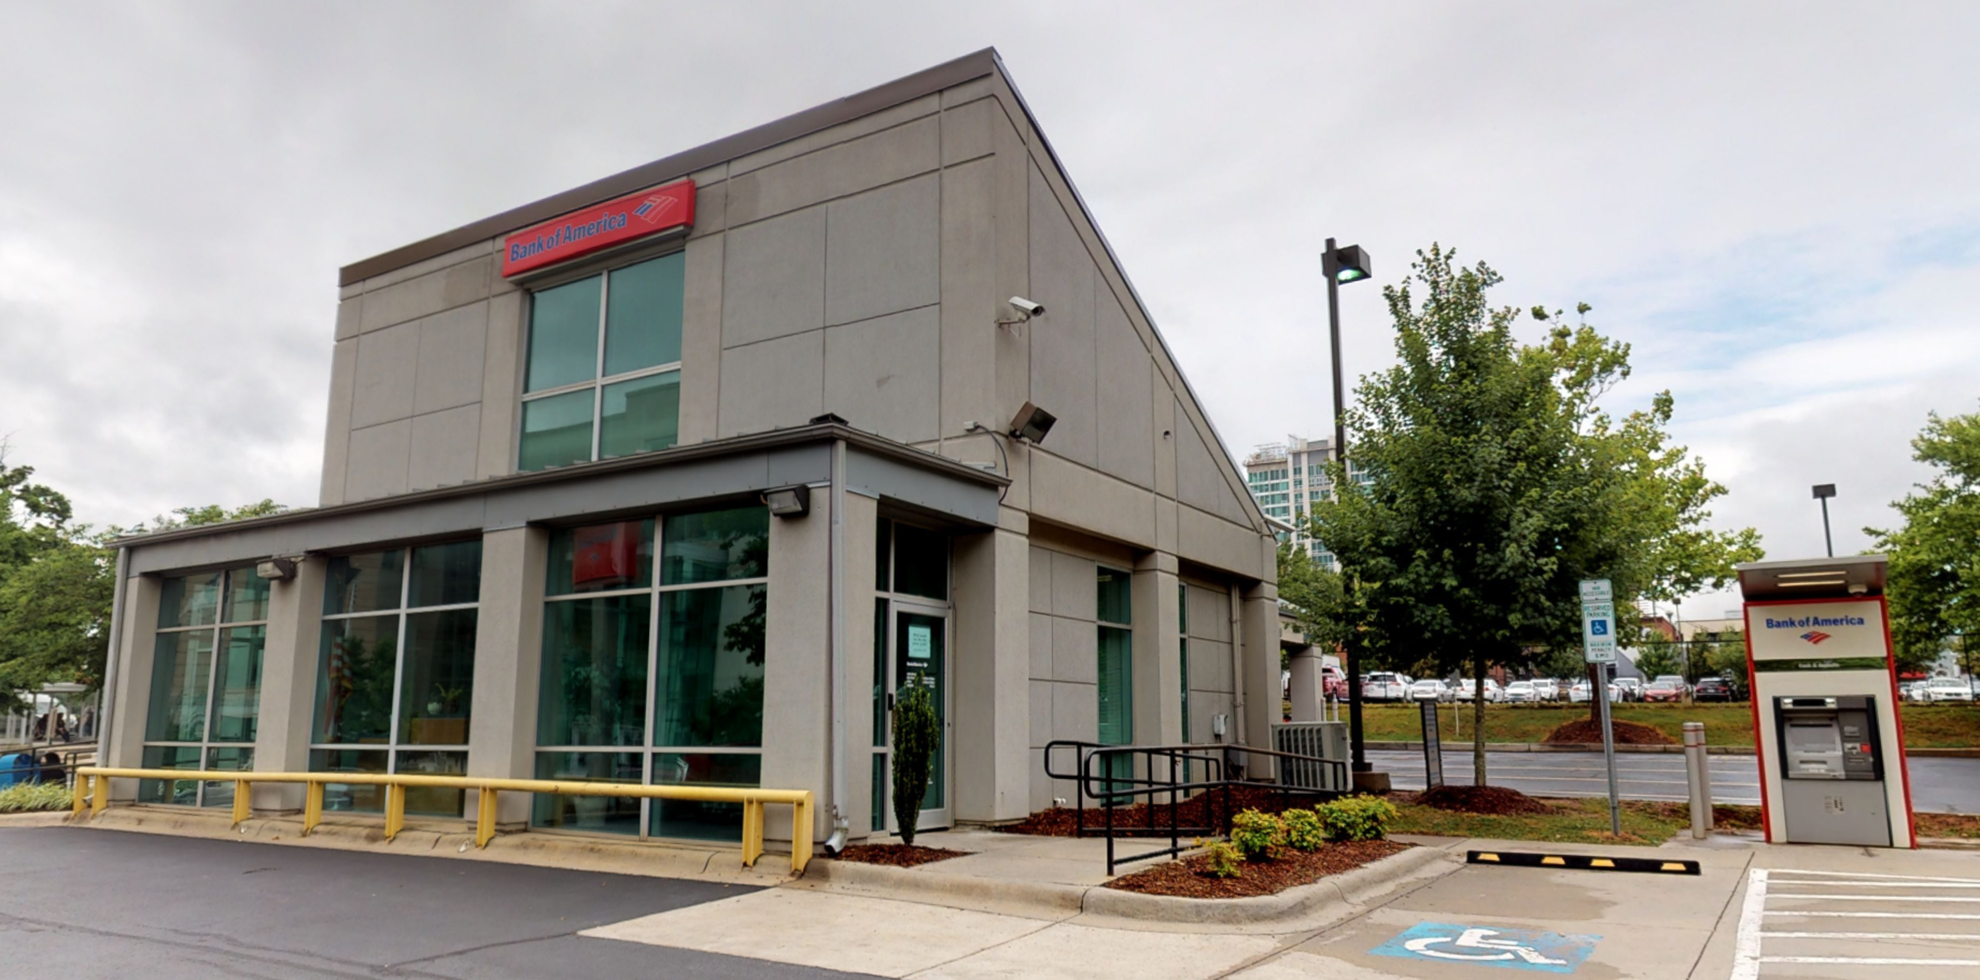 Bank of America financial center with drive-thru ATM | 162 College St, Asheville, NC 28801